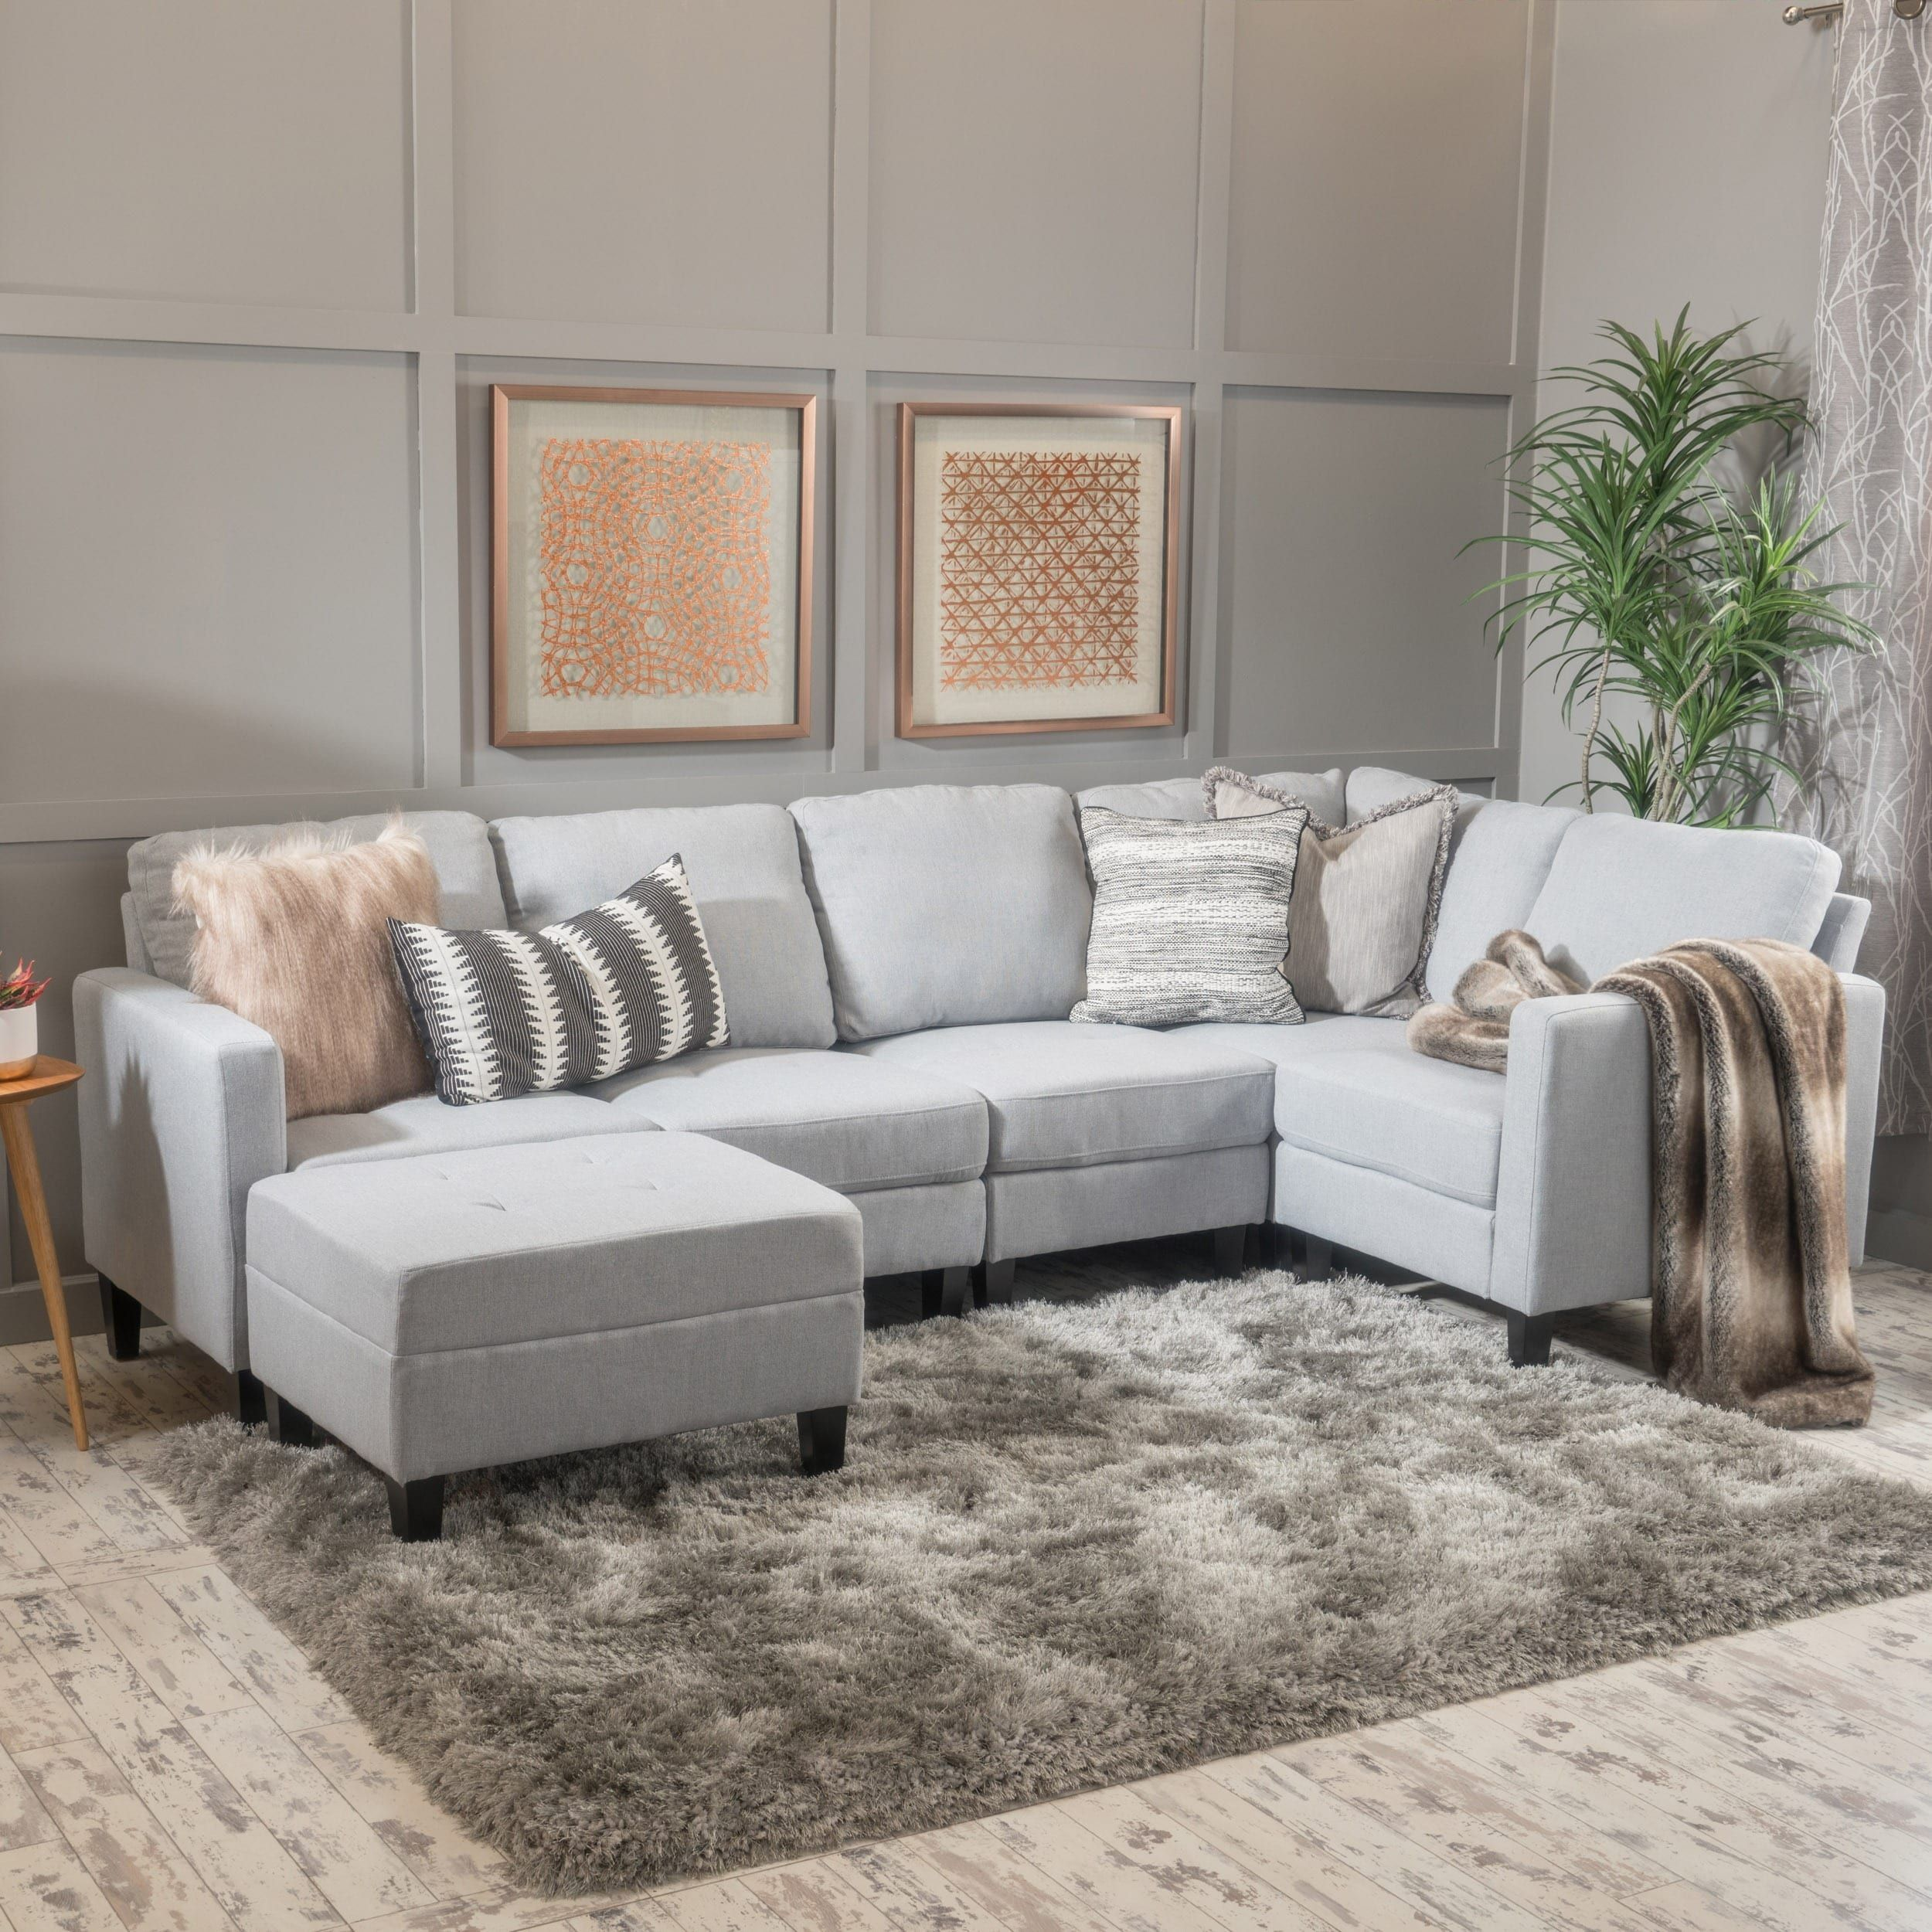 Zahra 6 Piece Fabric Sofa Sectional With Ottoman By Christopher Knight Home Small Sectional Sofa Sectional Sofa Fabric Sectional